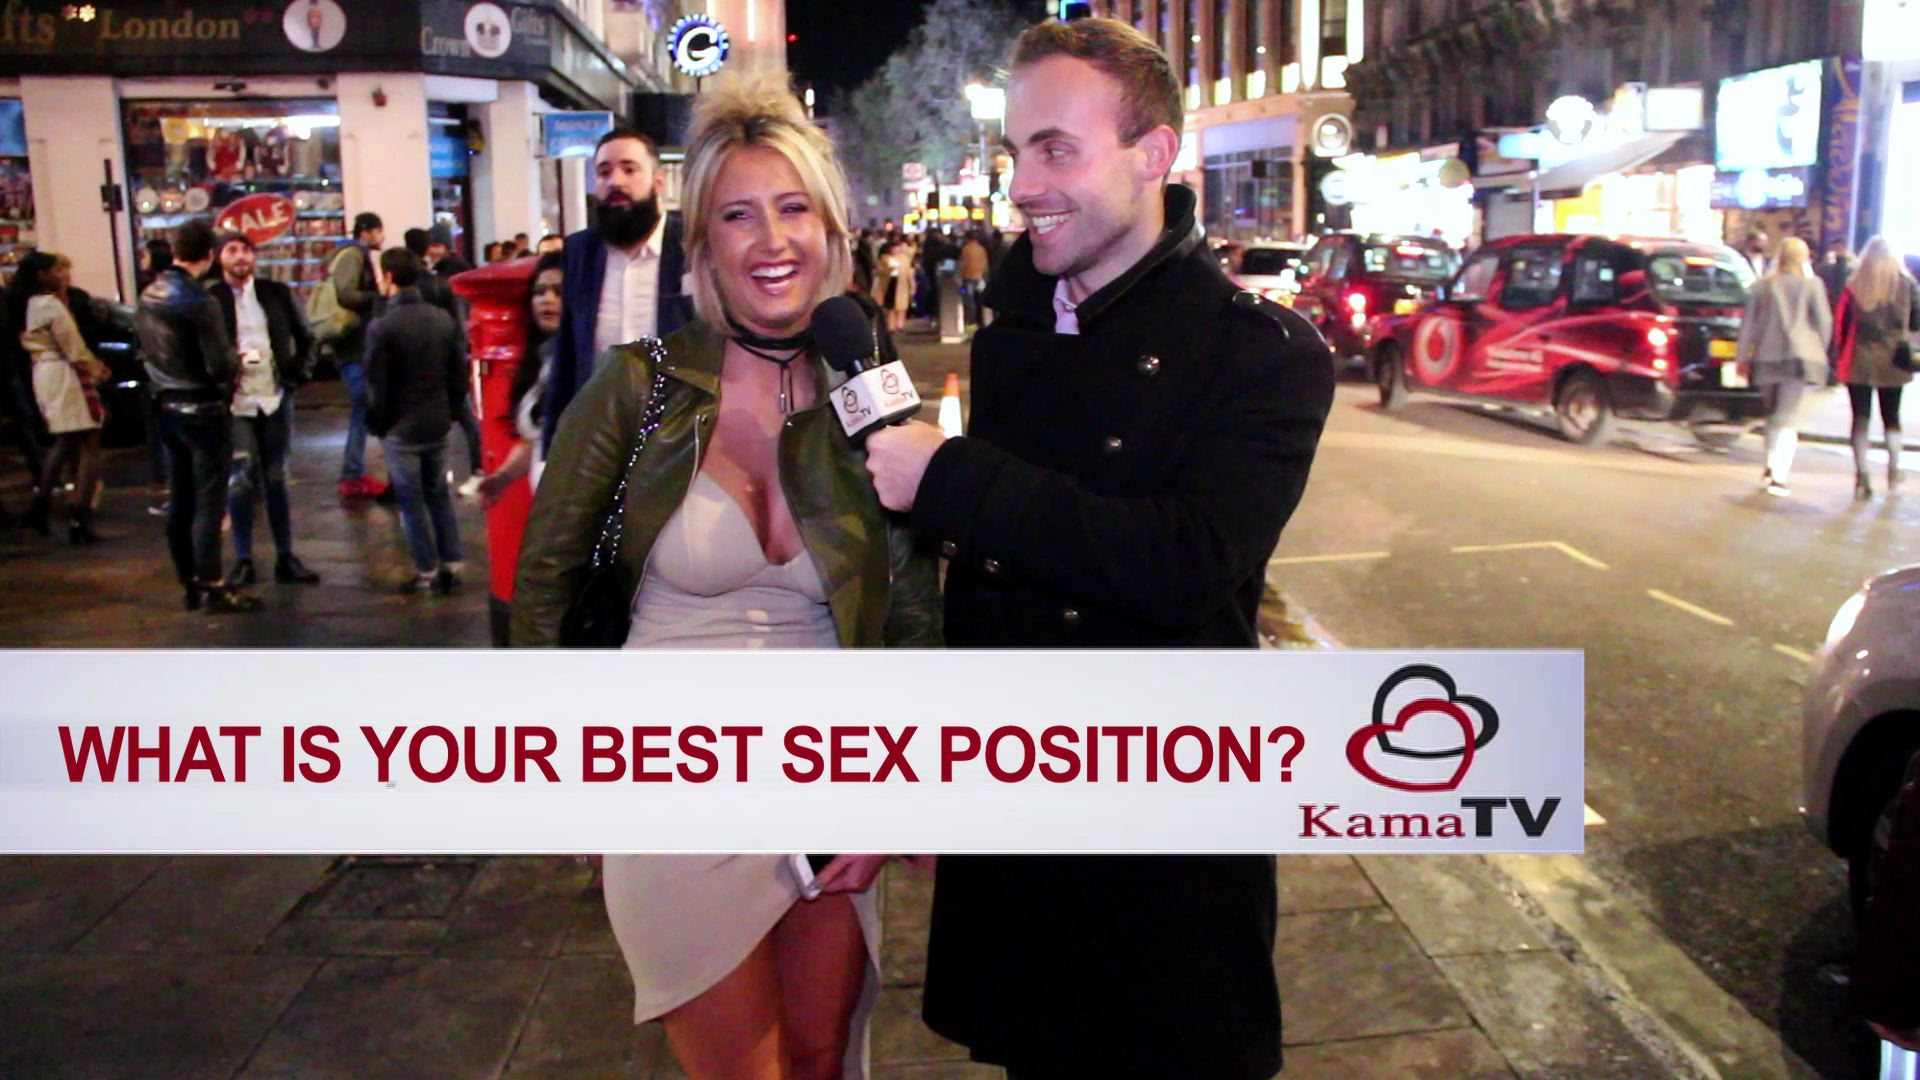 What is your best sex position